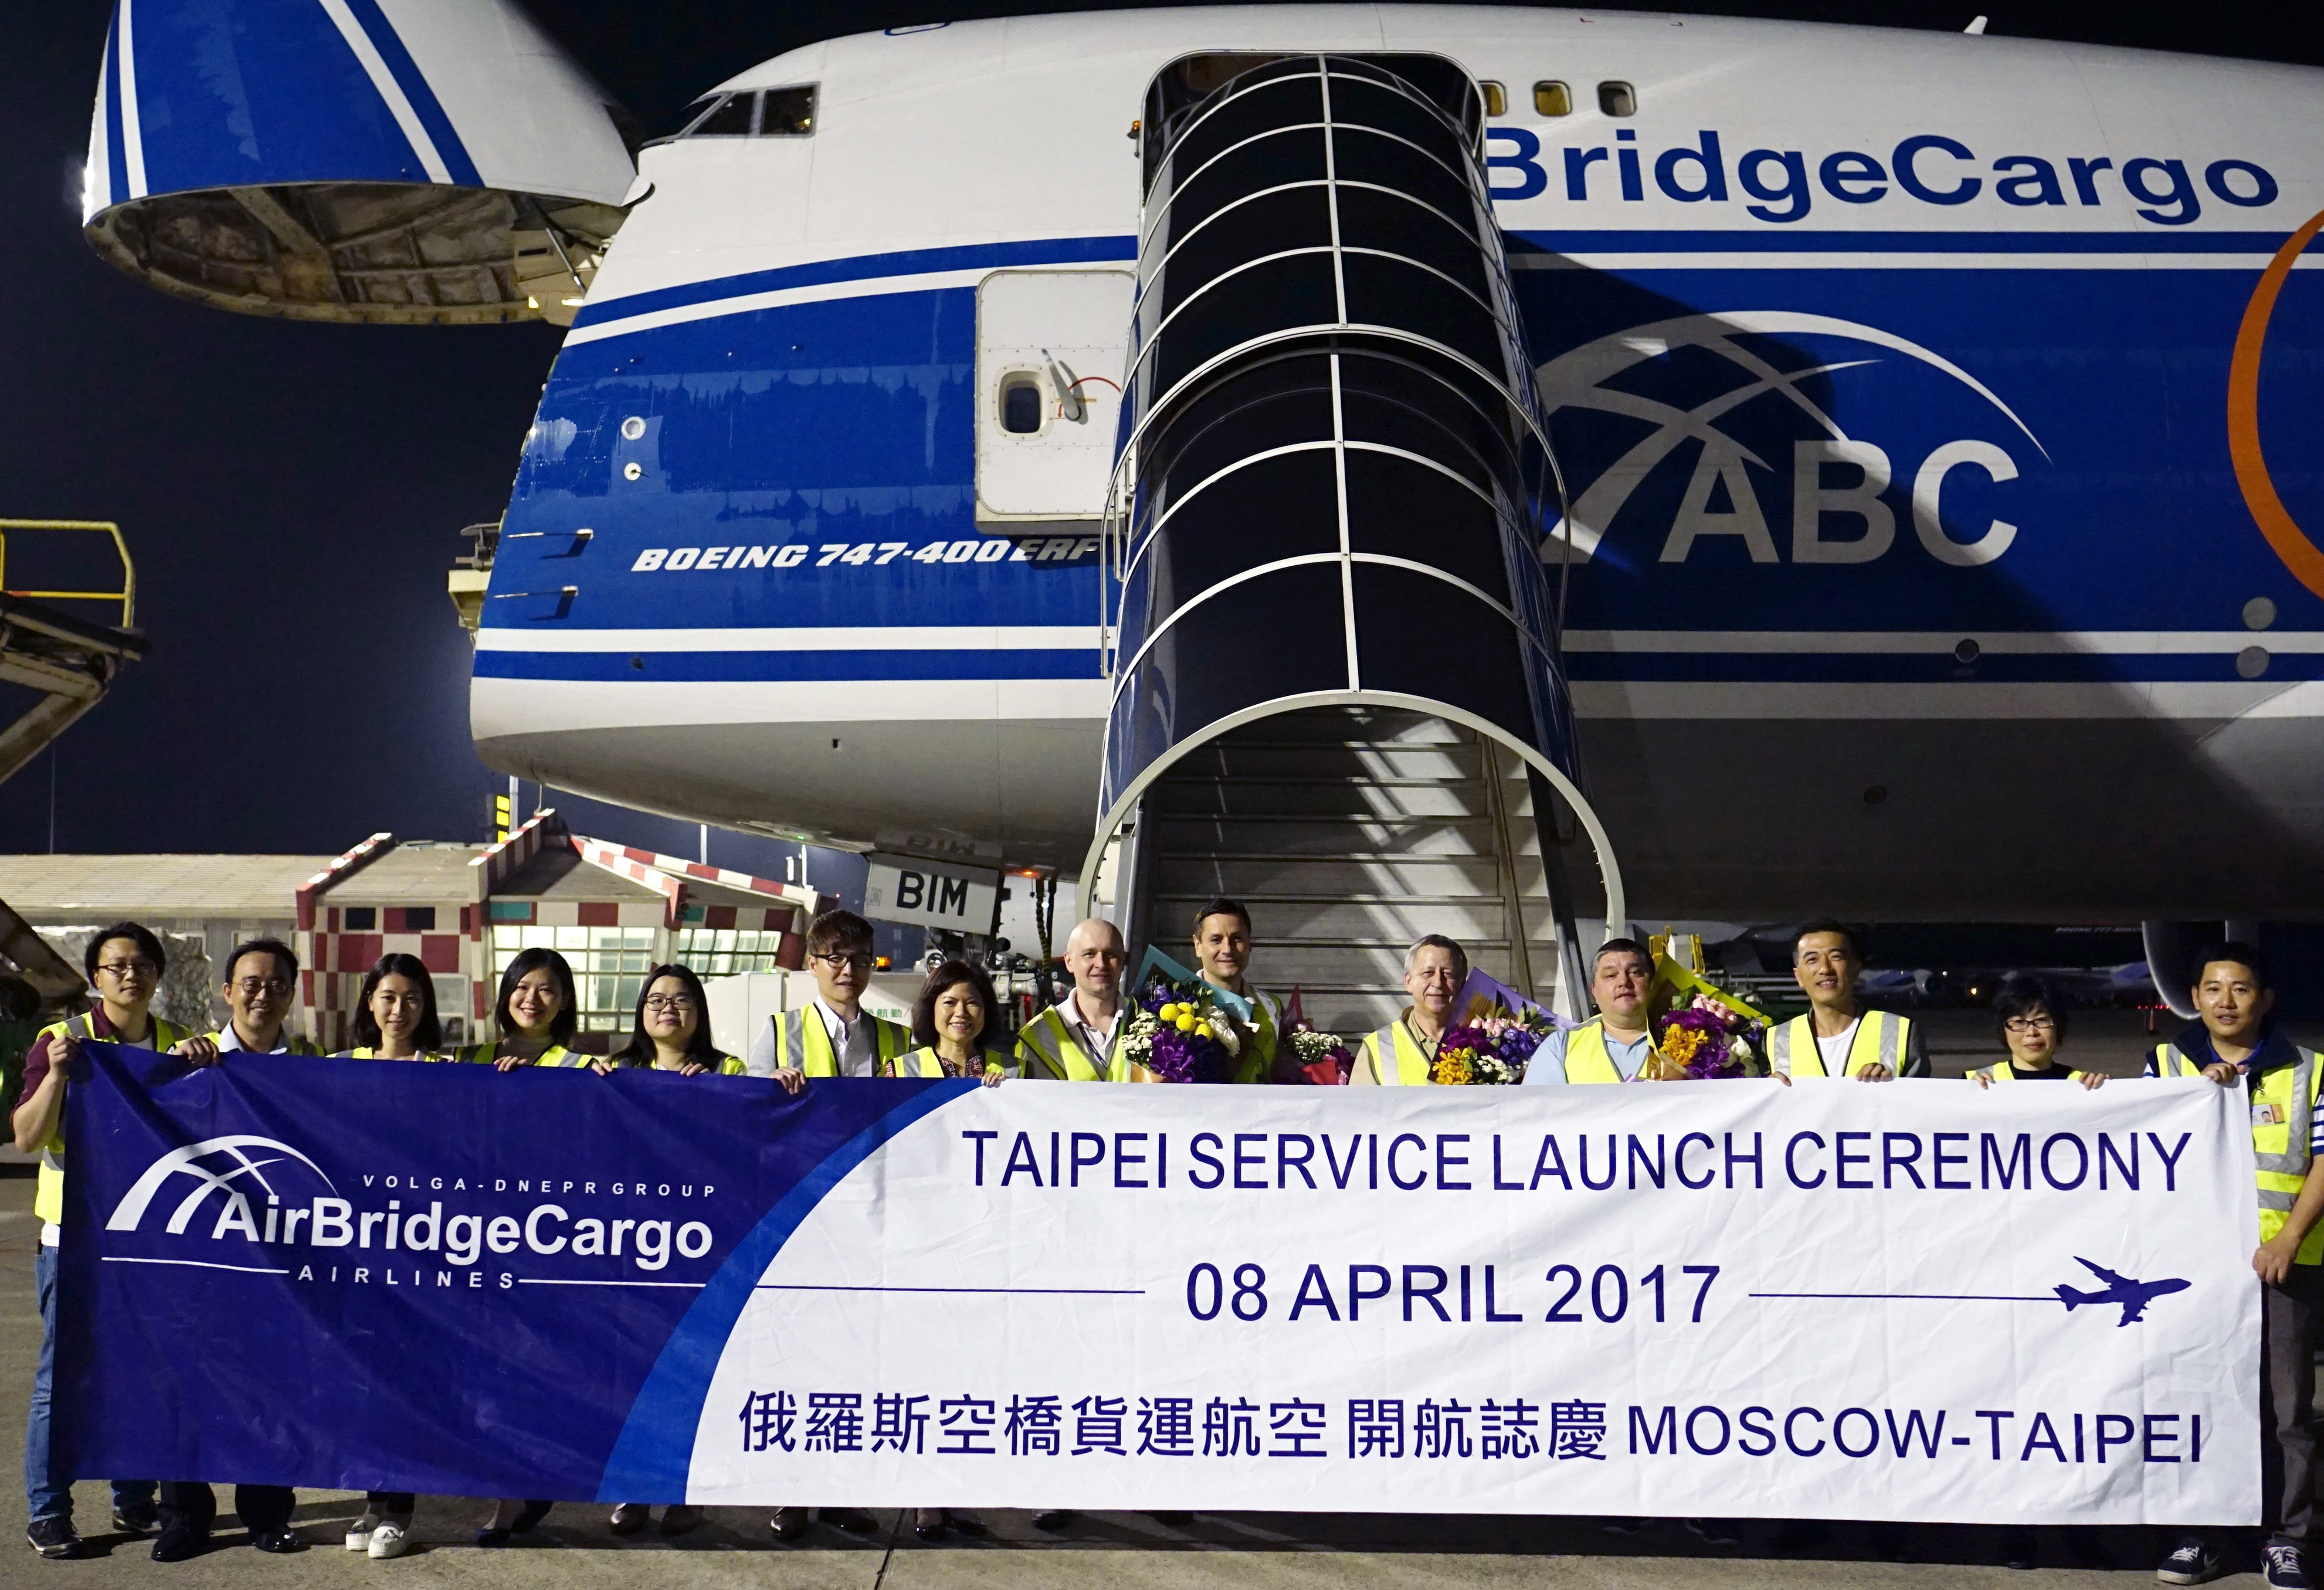 The Addition Of Taipei Means ABC Has Doubled Its Route Network For Customers In Region Last Two Years AirBridgeCargo Also Offers 747F Services